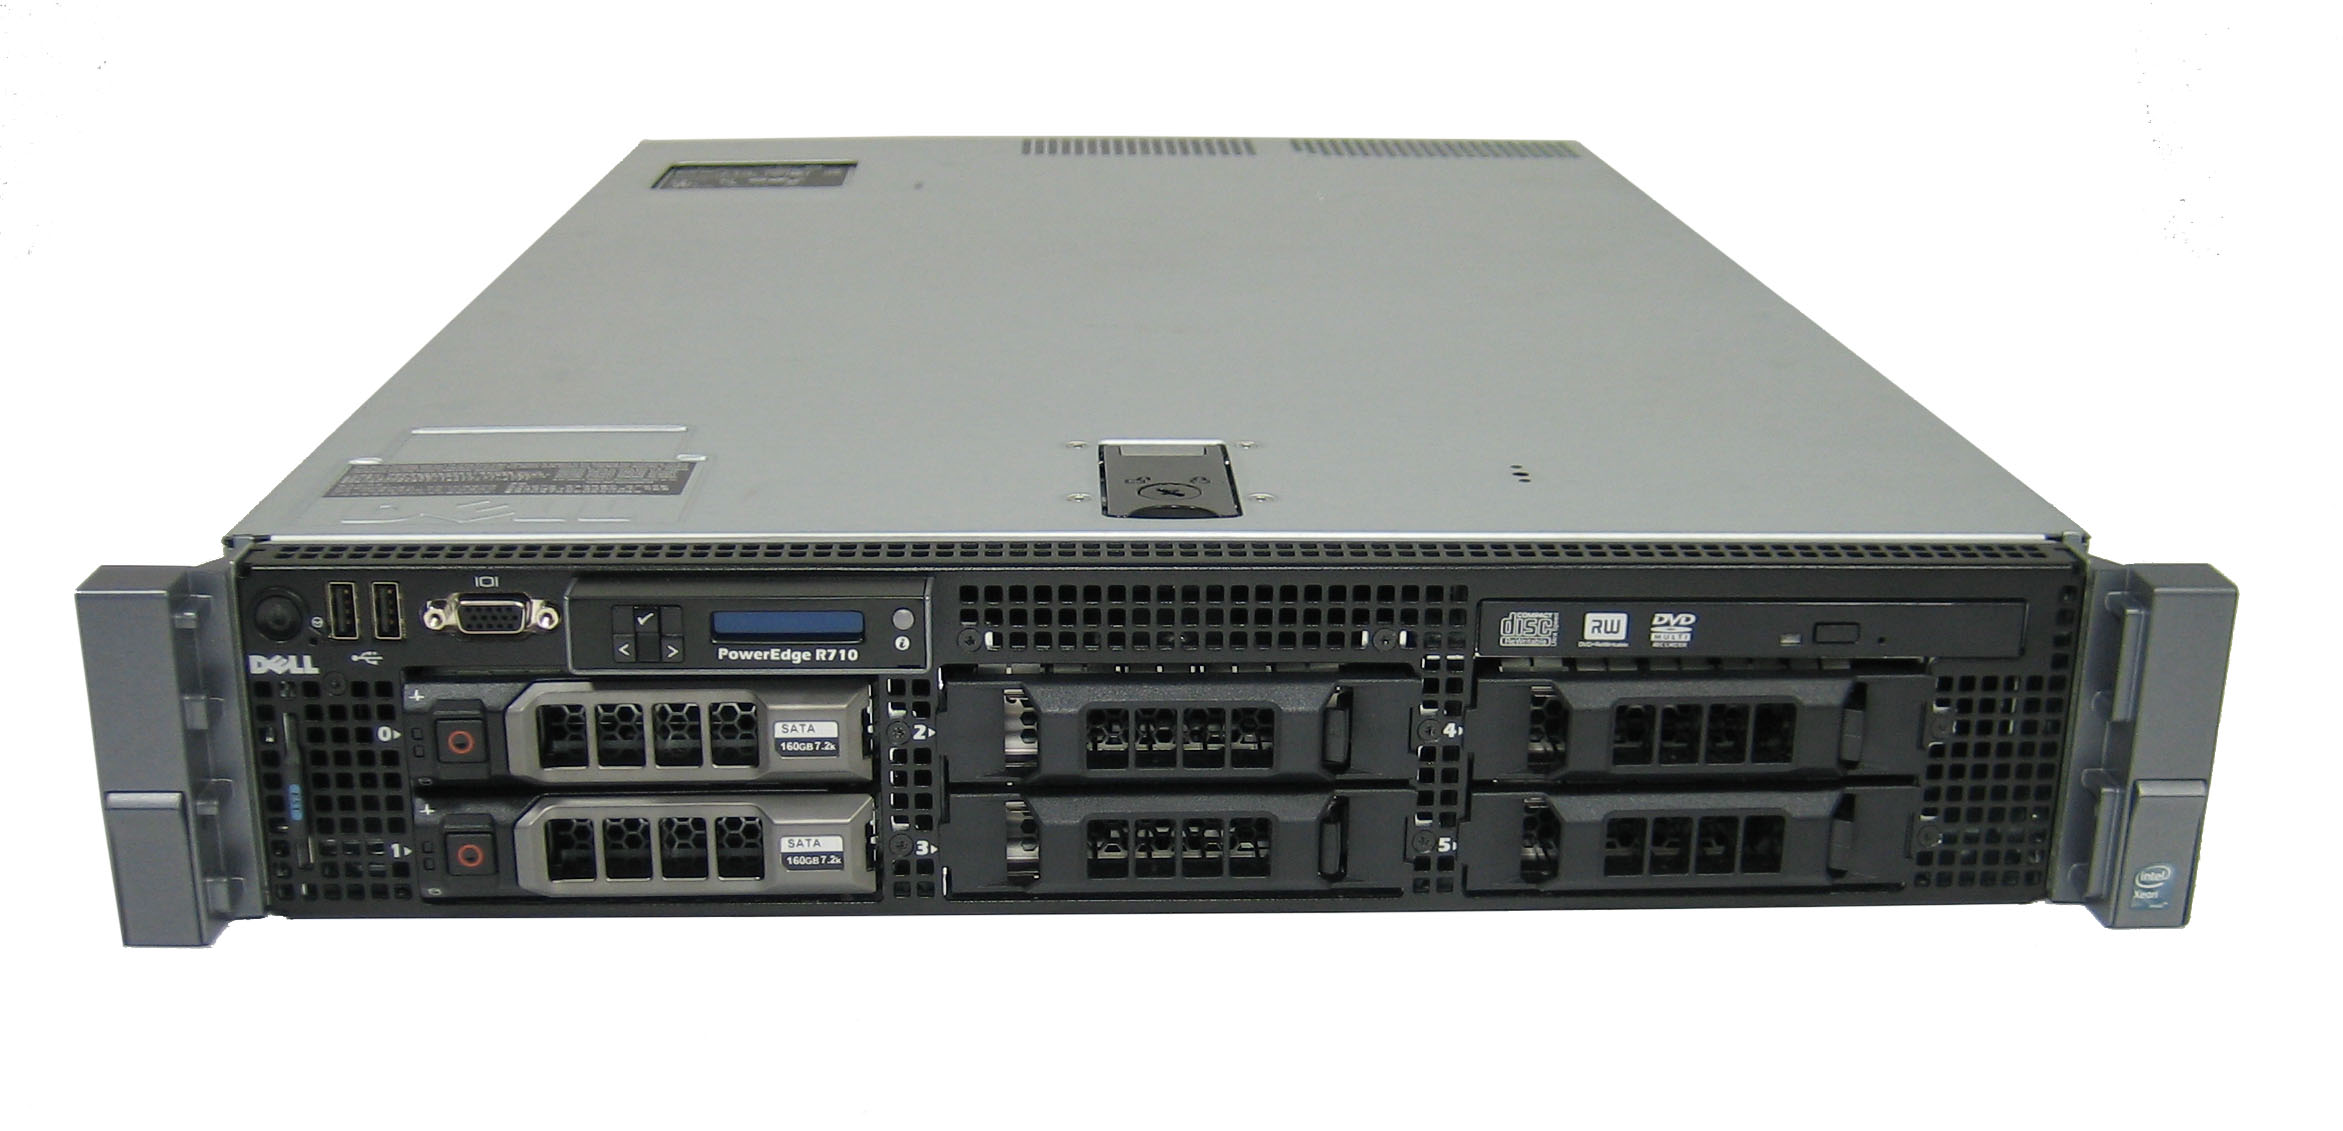 MÁY CHỦ SERVER DELL POWEREDGE R710 Six Core X5650 2.66Ghz